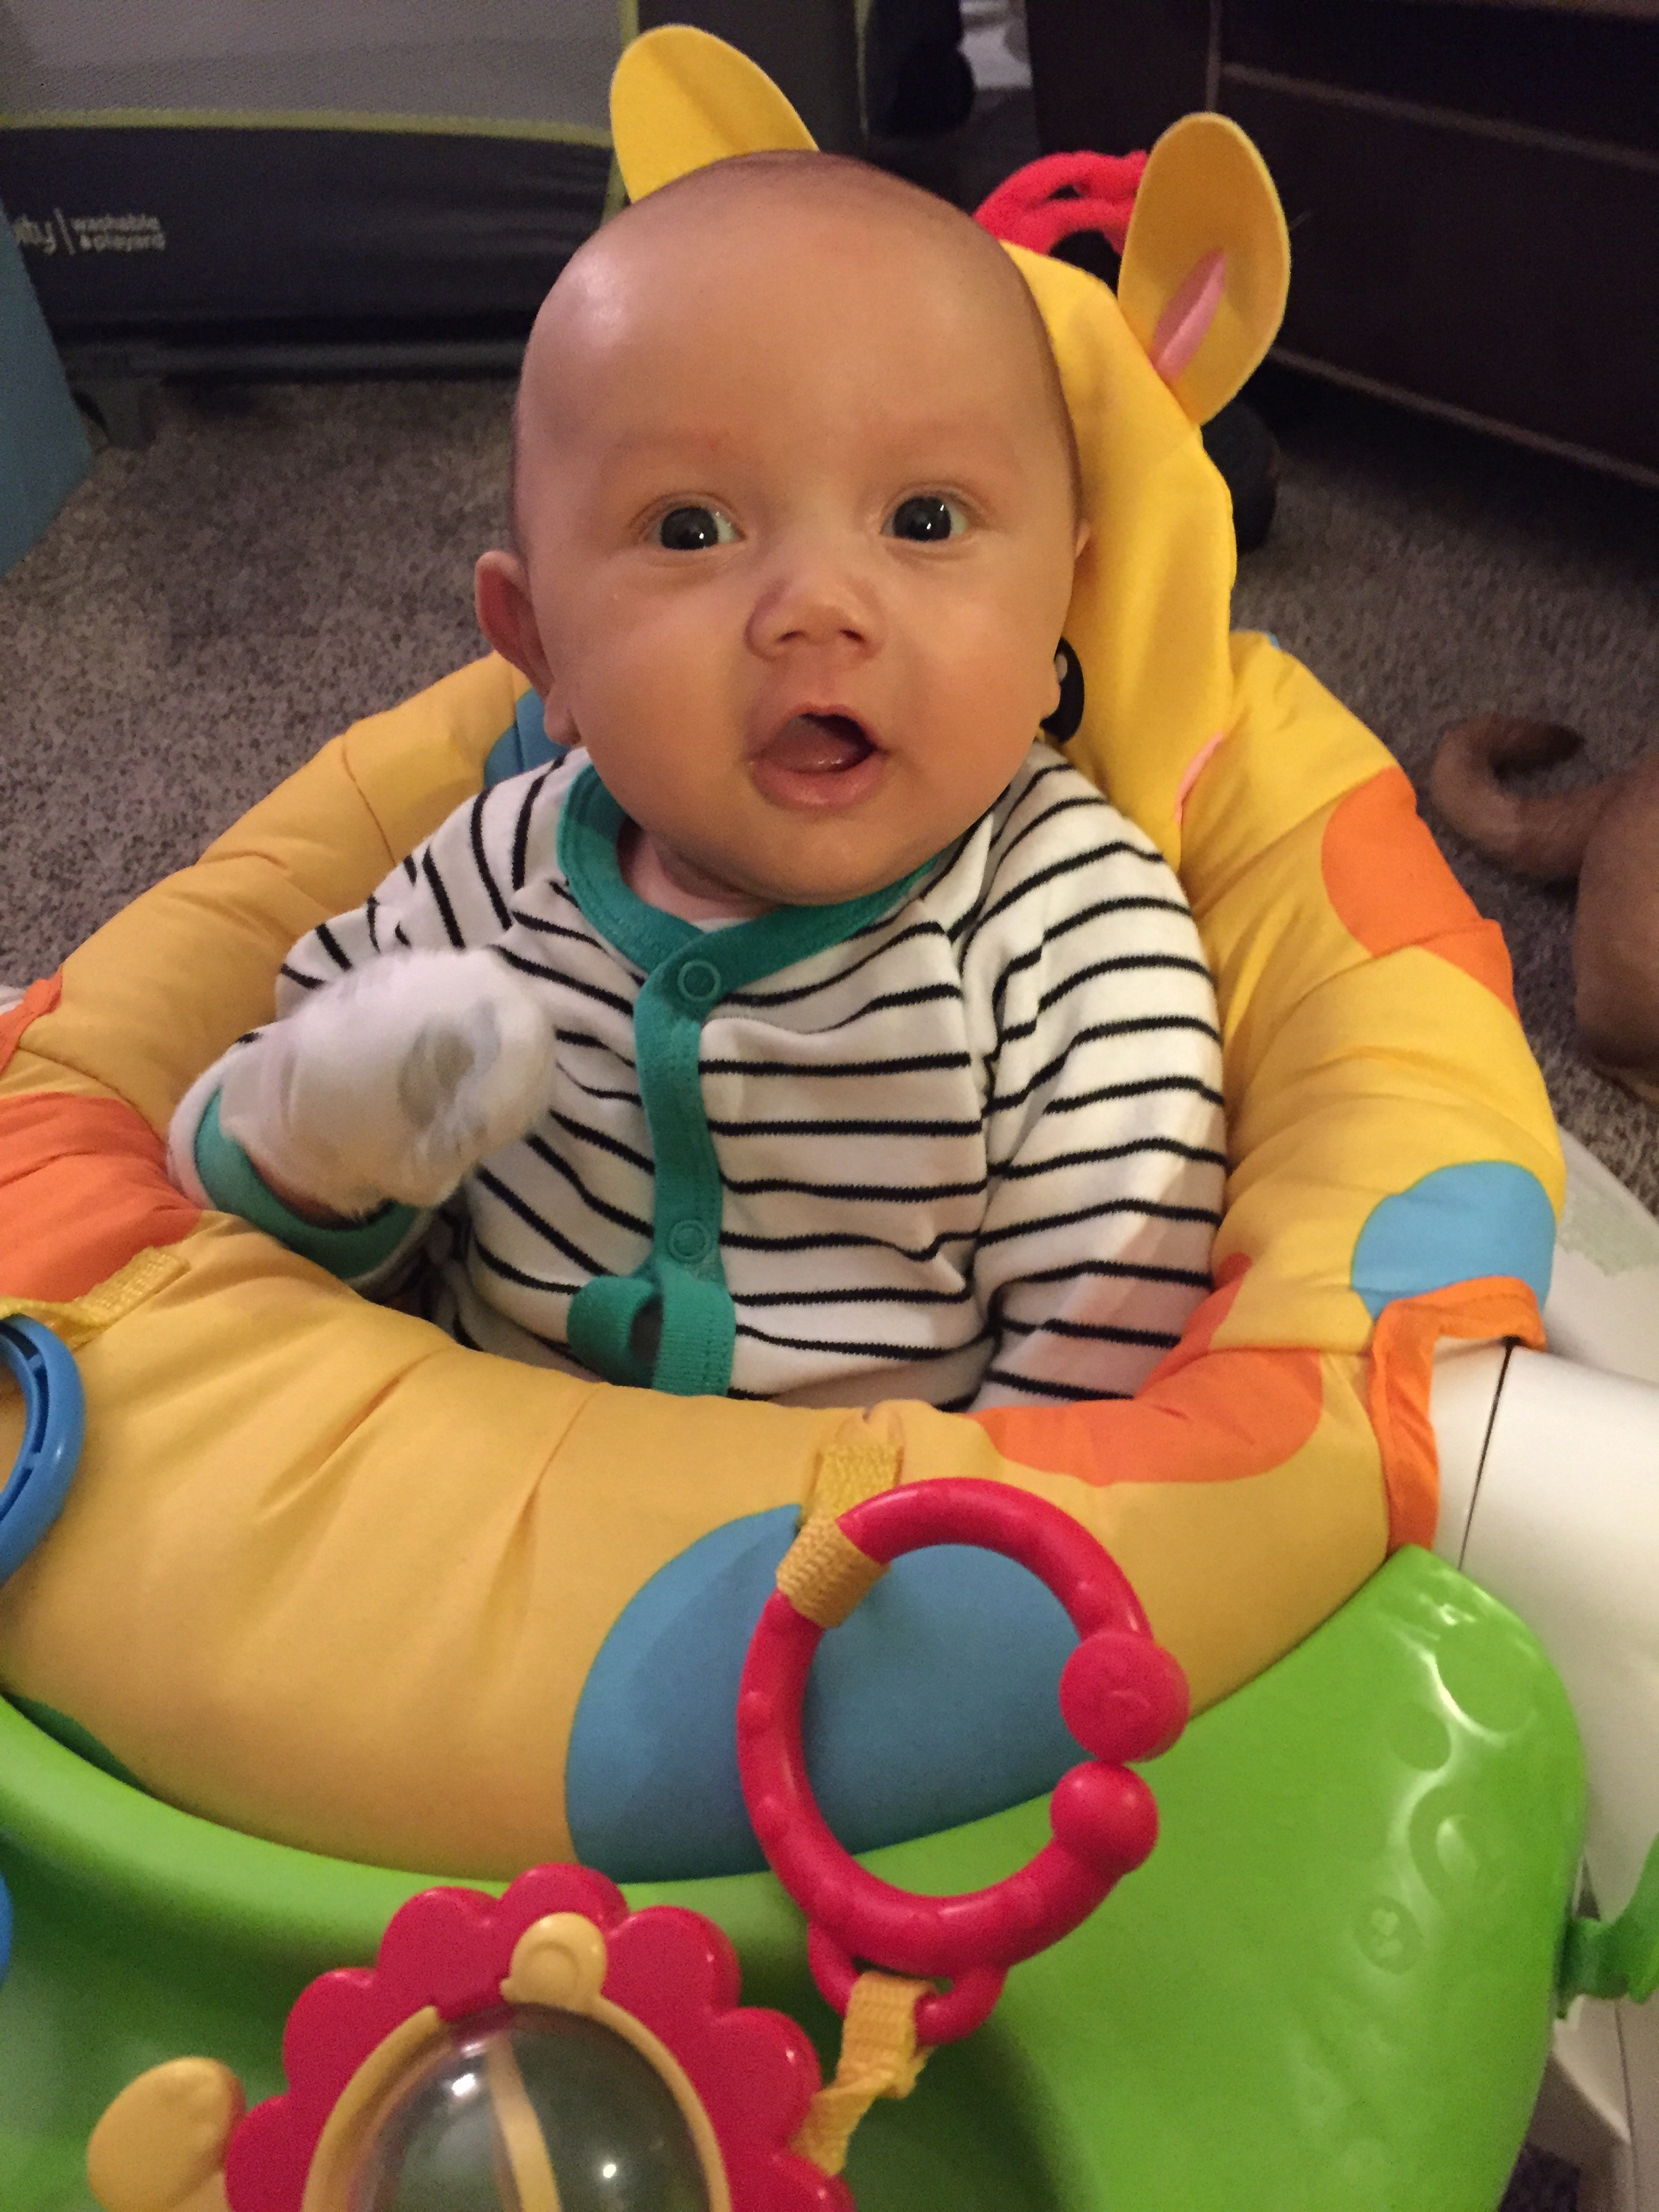 fisher price sit and play chair bloom high me up january 2015 babies forums what to expect about 2 3 weeks he absolutely loves it because is always wanting like a big boy we don t keep him in for long but still has blast